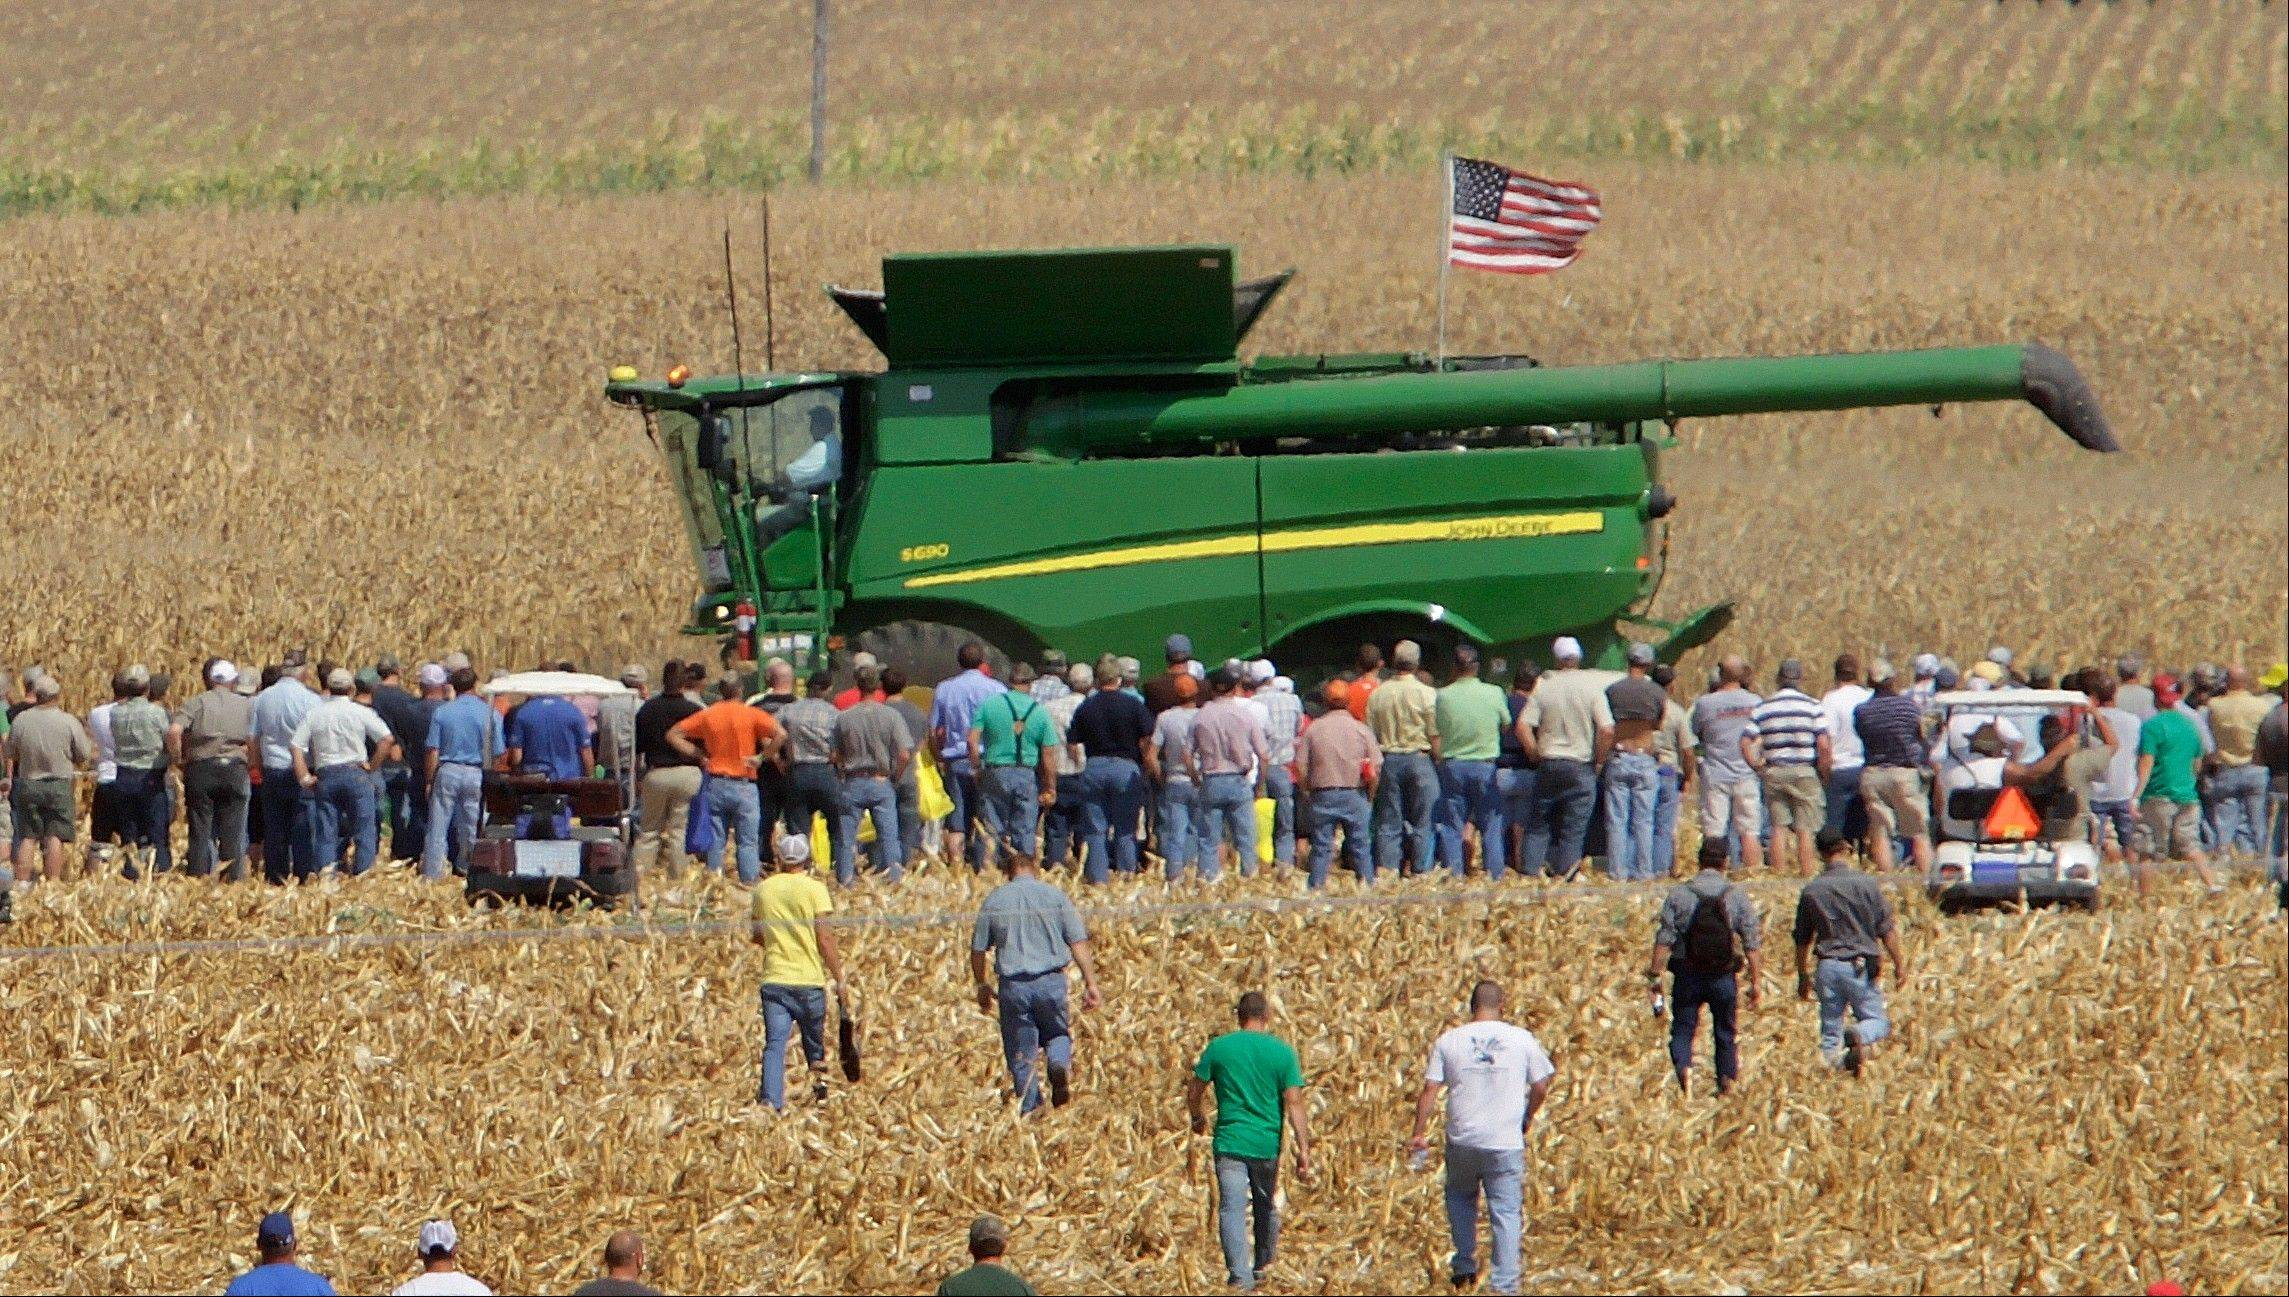 The farm equipment demonstrations are popular with visitors during the Farm Progress Show in Decatur.